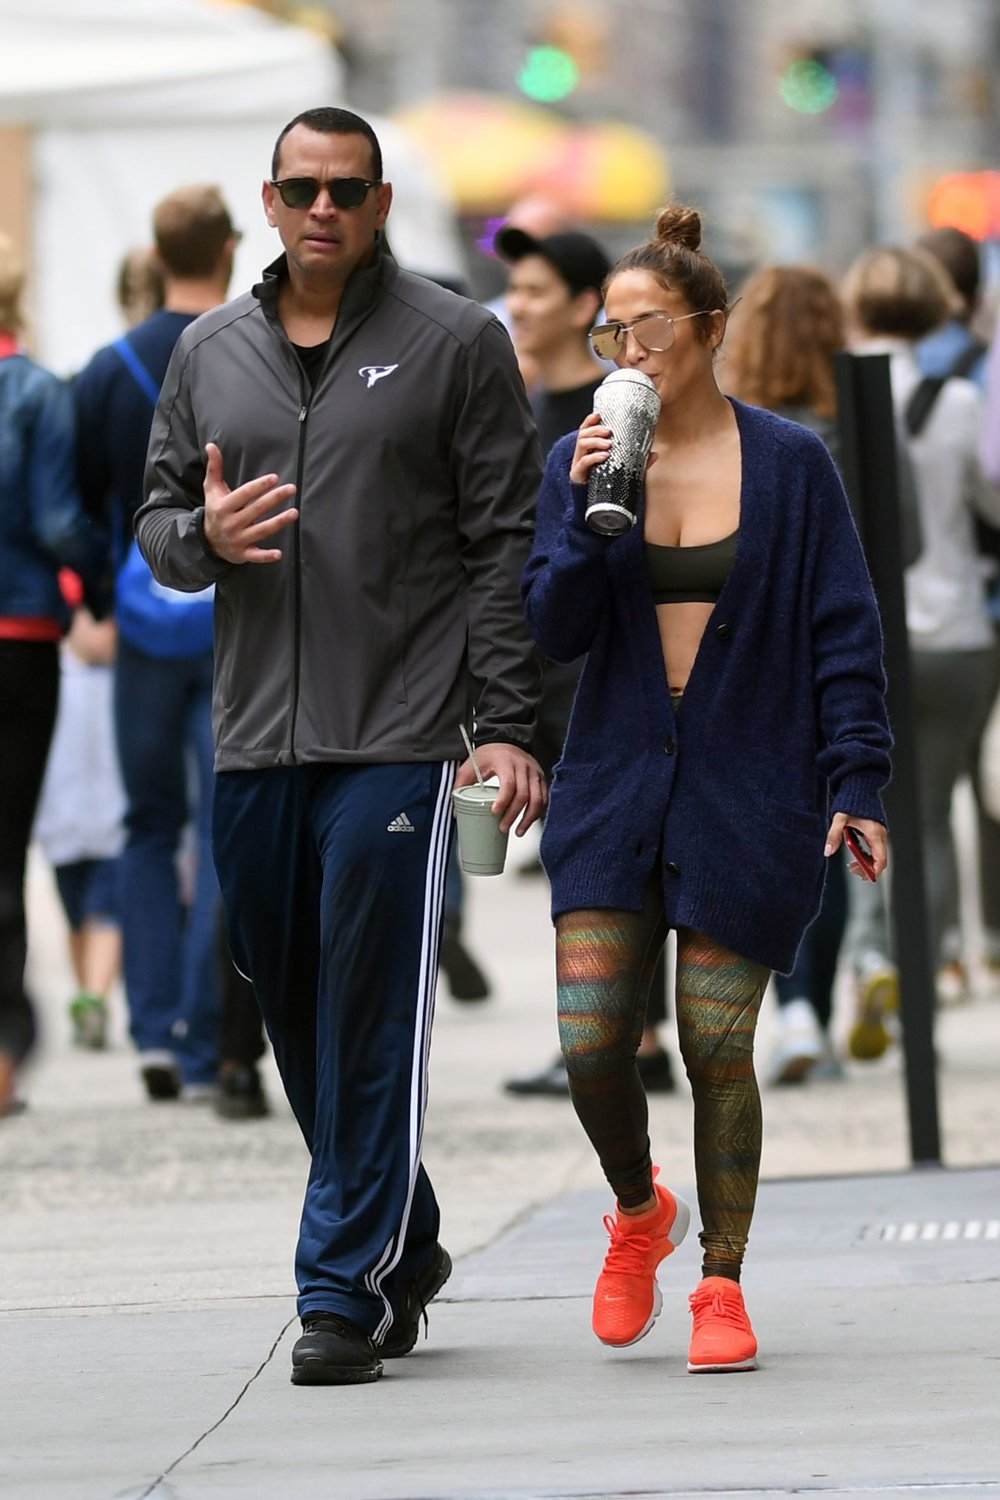 jennifer-lopez-and-alex-rodriguez-heading-back-home-after-workout-at-the-gym-in-nyc-08-29-2017-3.jpg